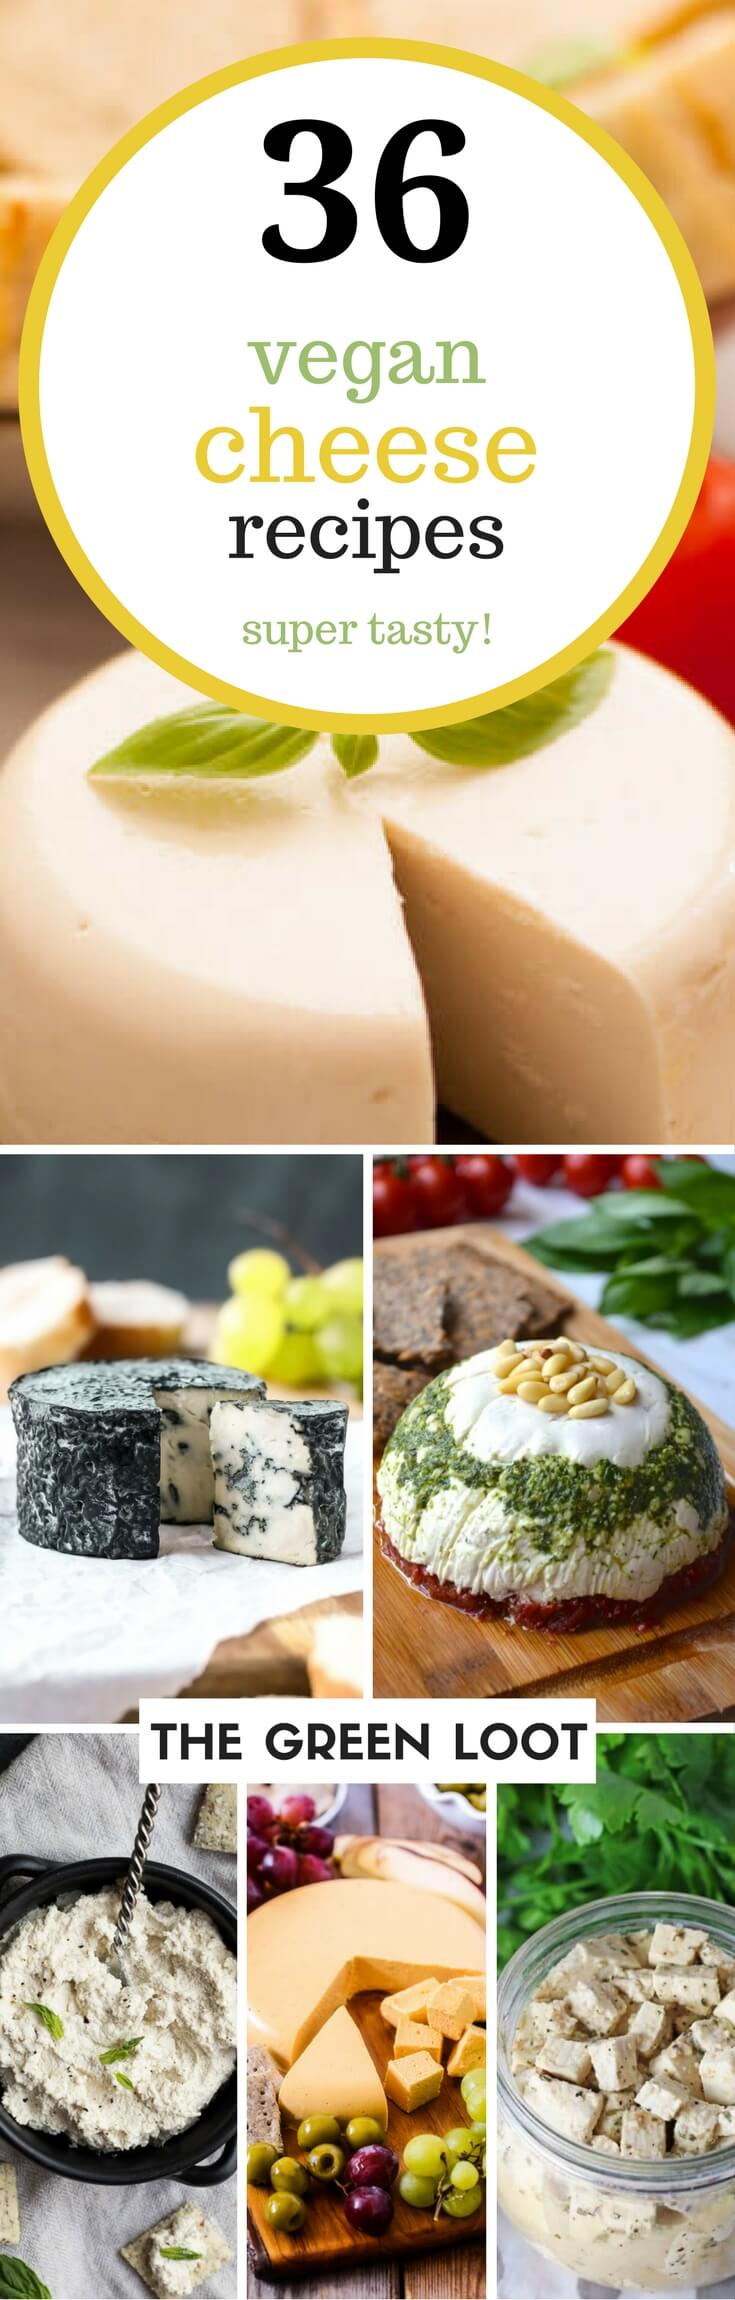 These vegan cheese recipes are the best. Make an easy, melty mozzarella, cashew, almond, or nut-free cheese at home today. Dairy-free and delicious! | The Green Loot #vegan #dairyfree